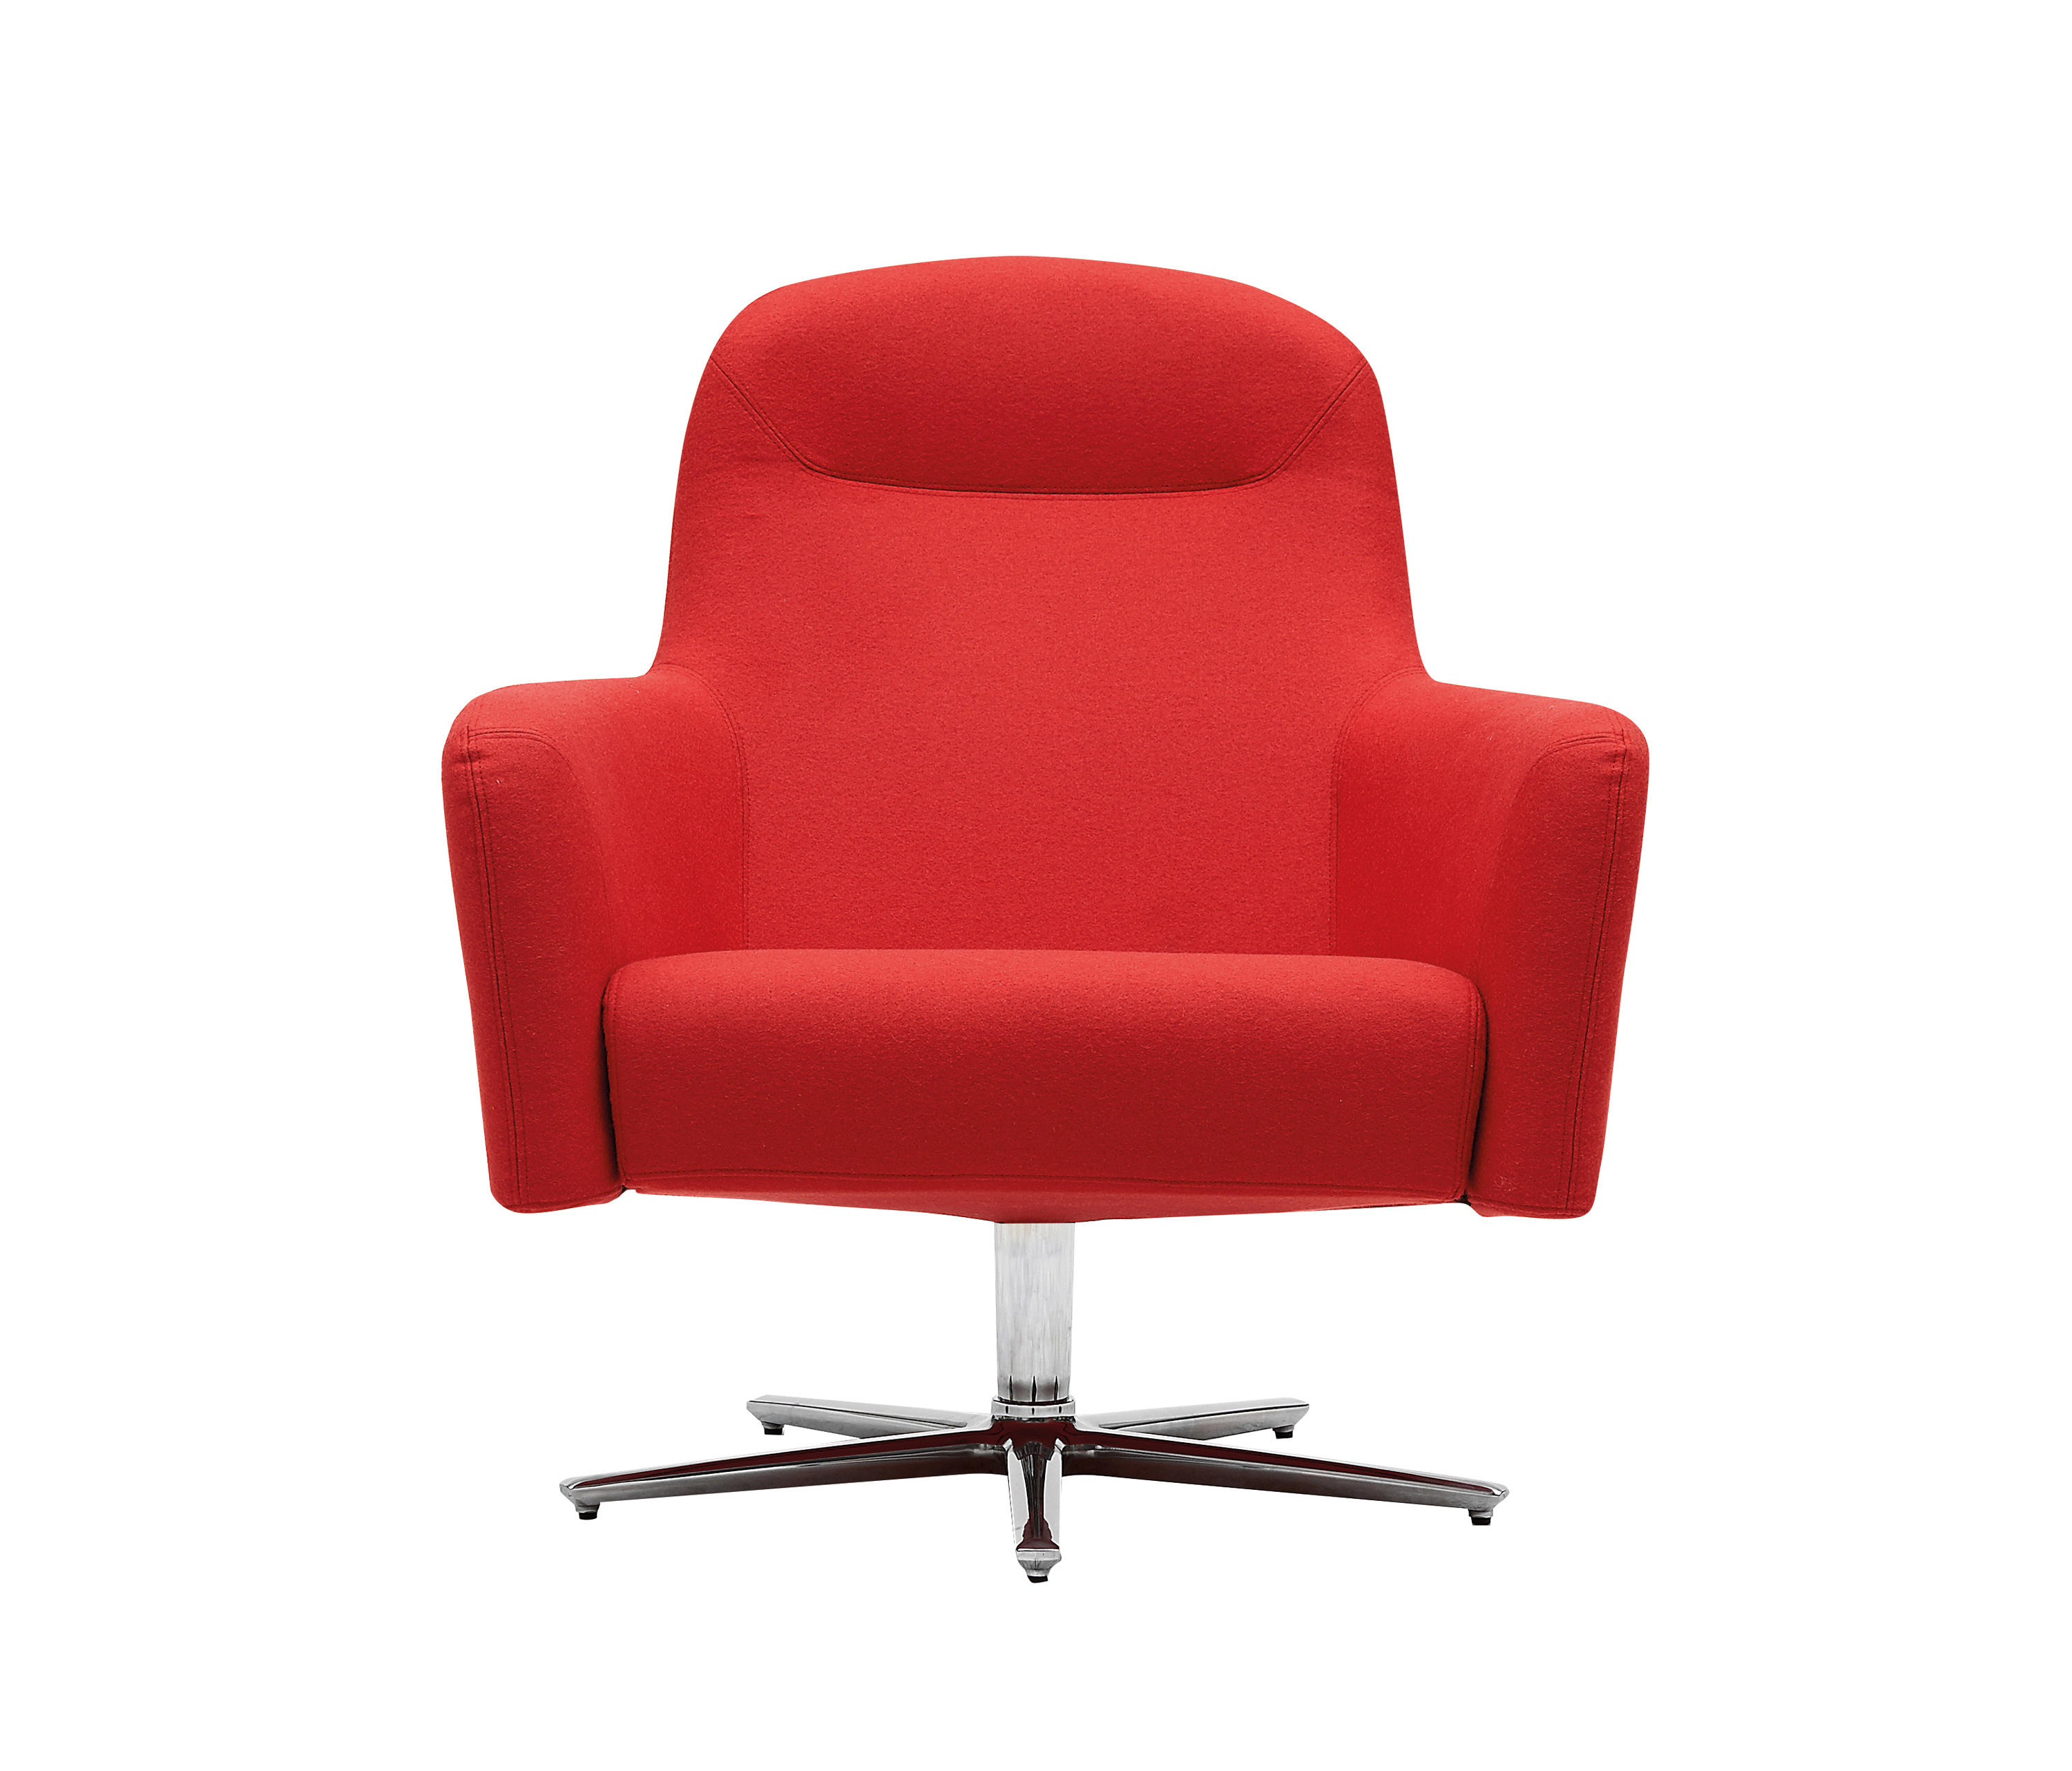 Sessel Havanna Havana Swivel Low Chair Sessel Von Softline A S Architonic